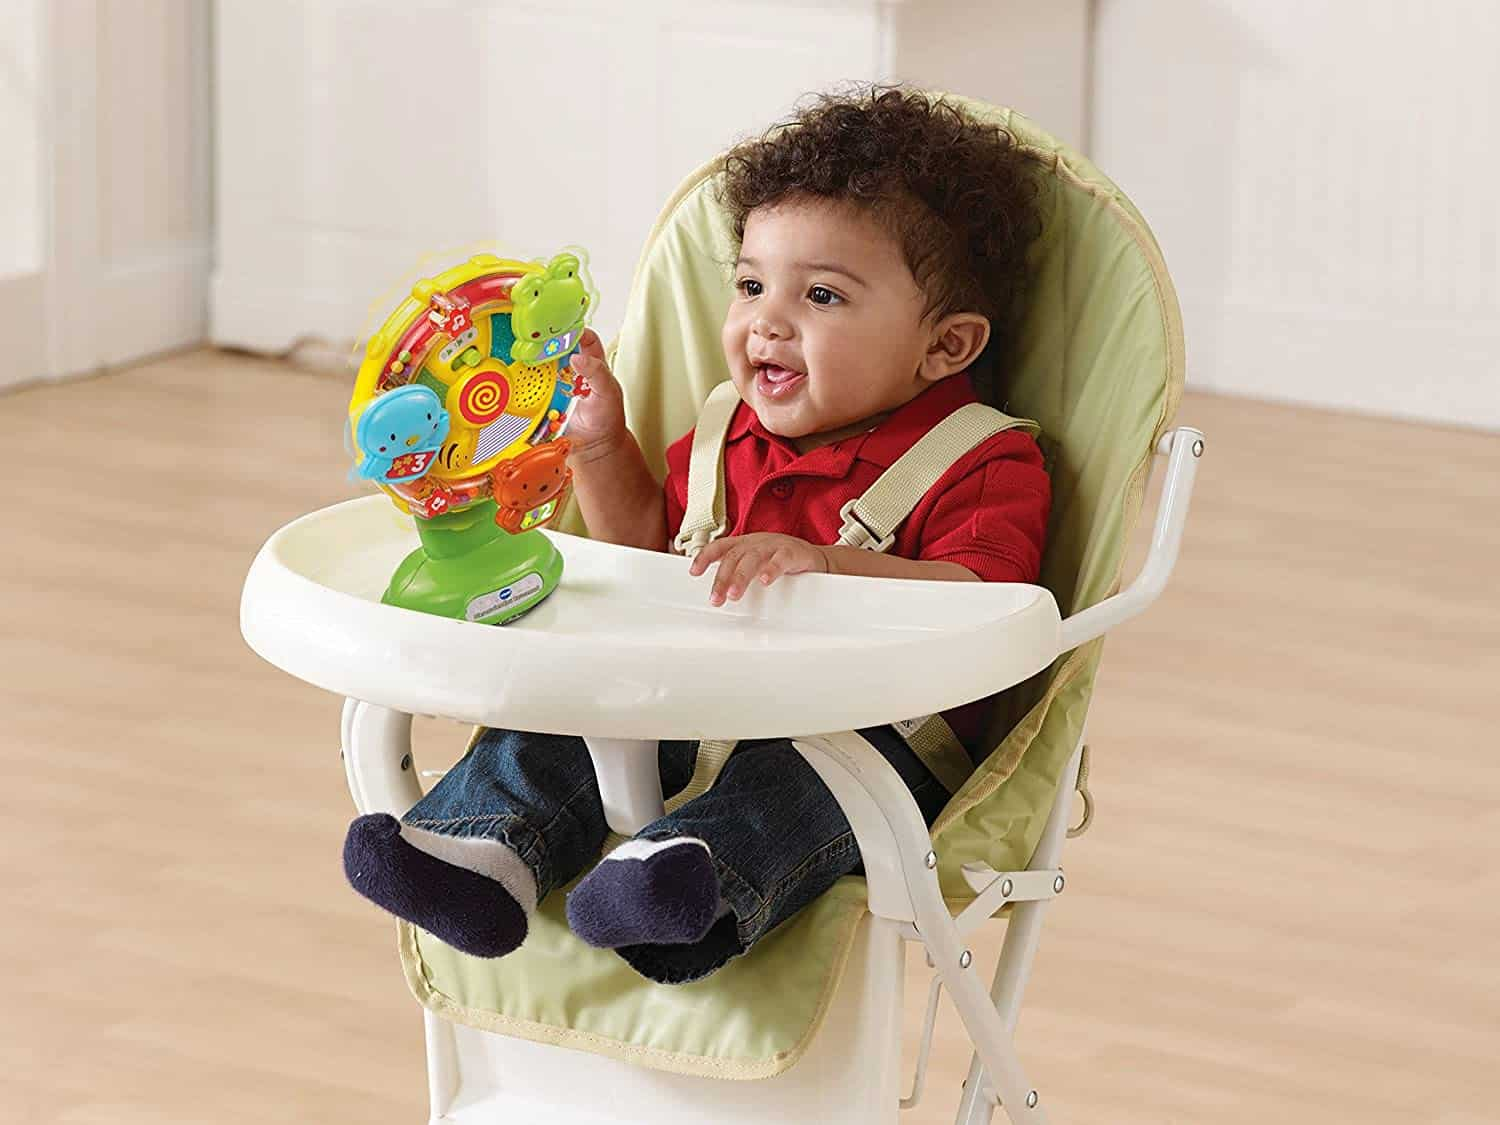 Best toys with light and sound: VTech Baby Animal Friends Ferris wheel